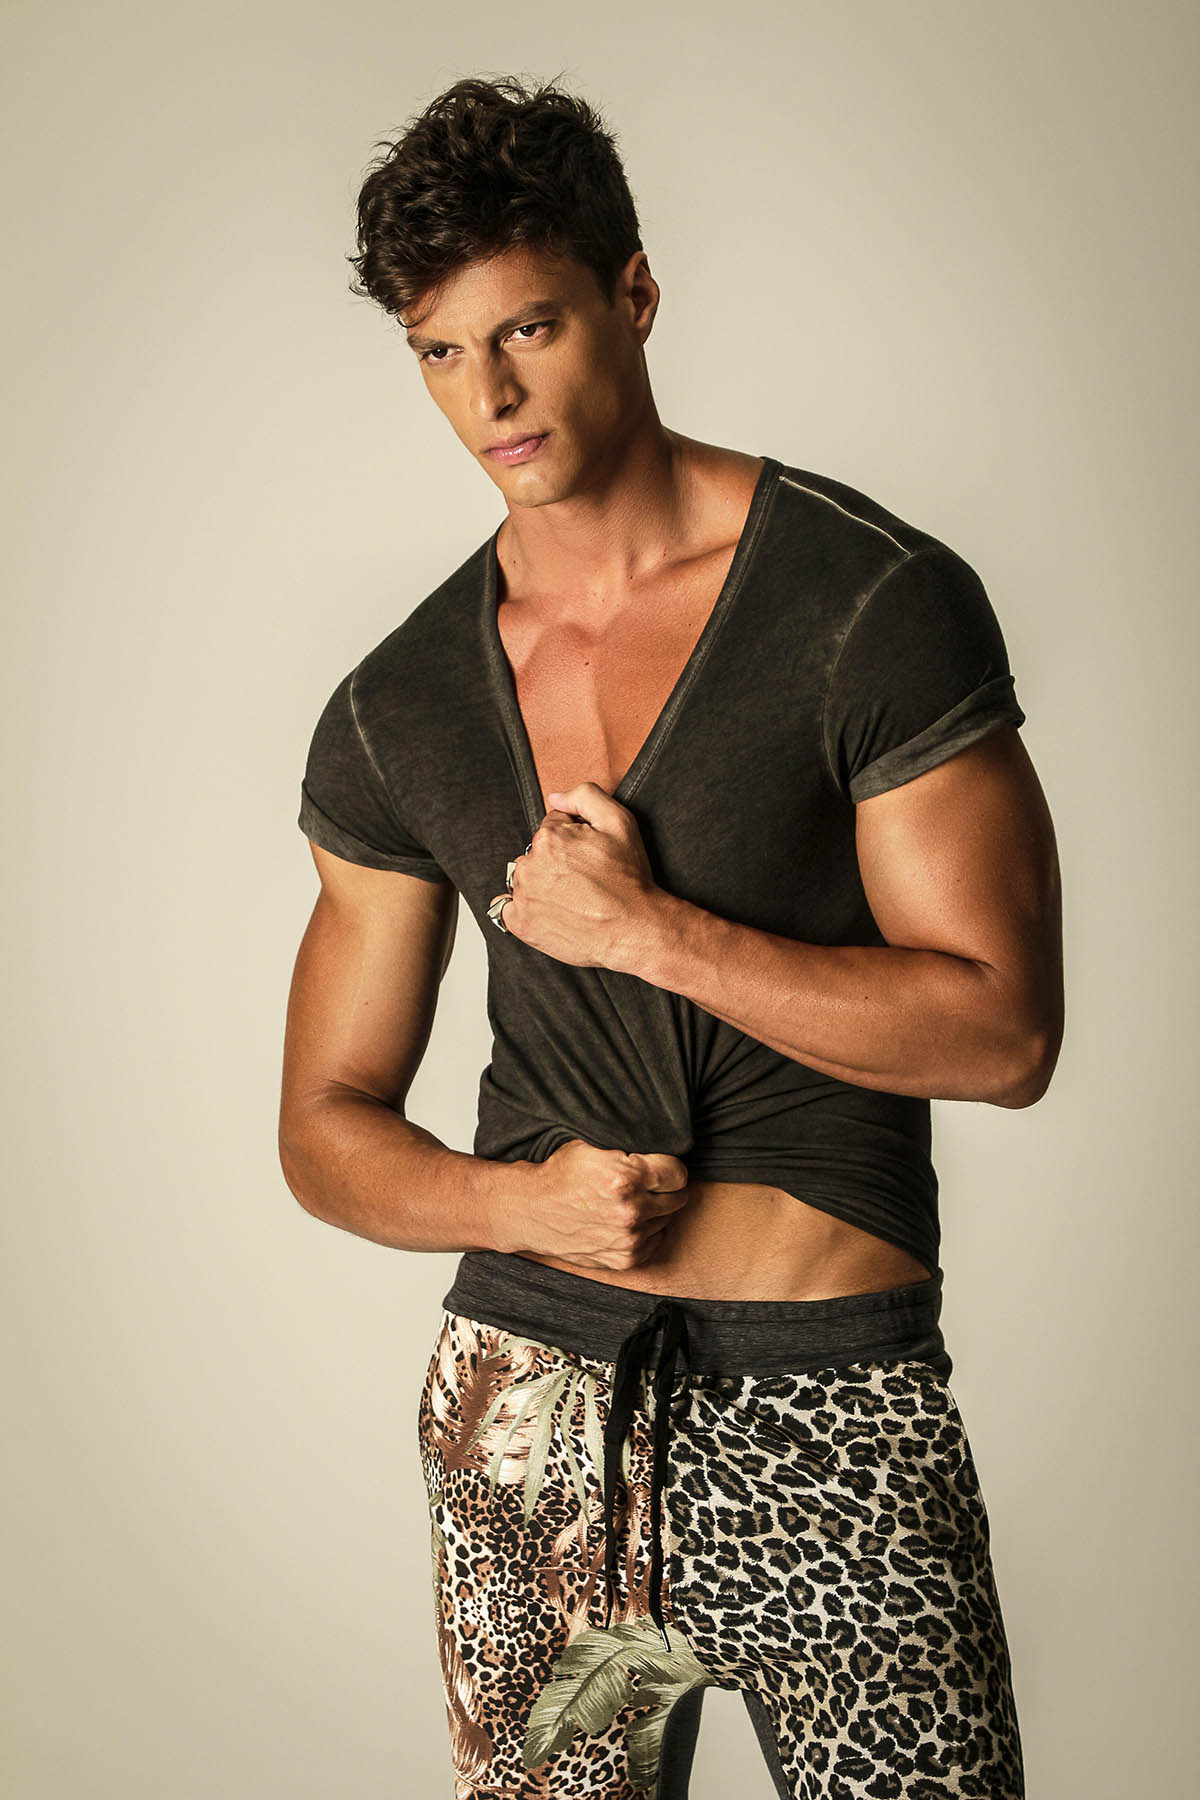 Felipe Anibal by Marcio Farias for Brazilian Male Model